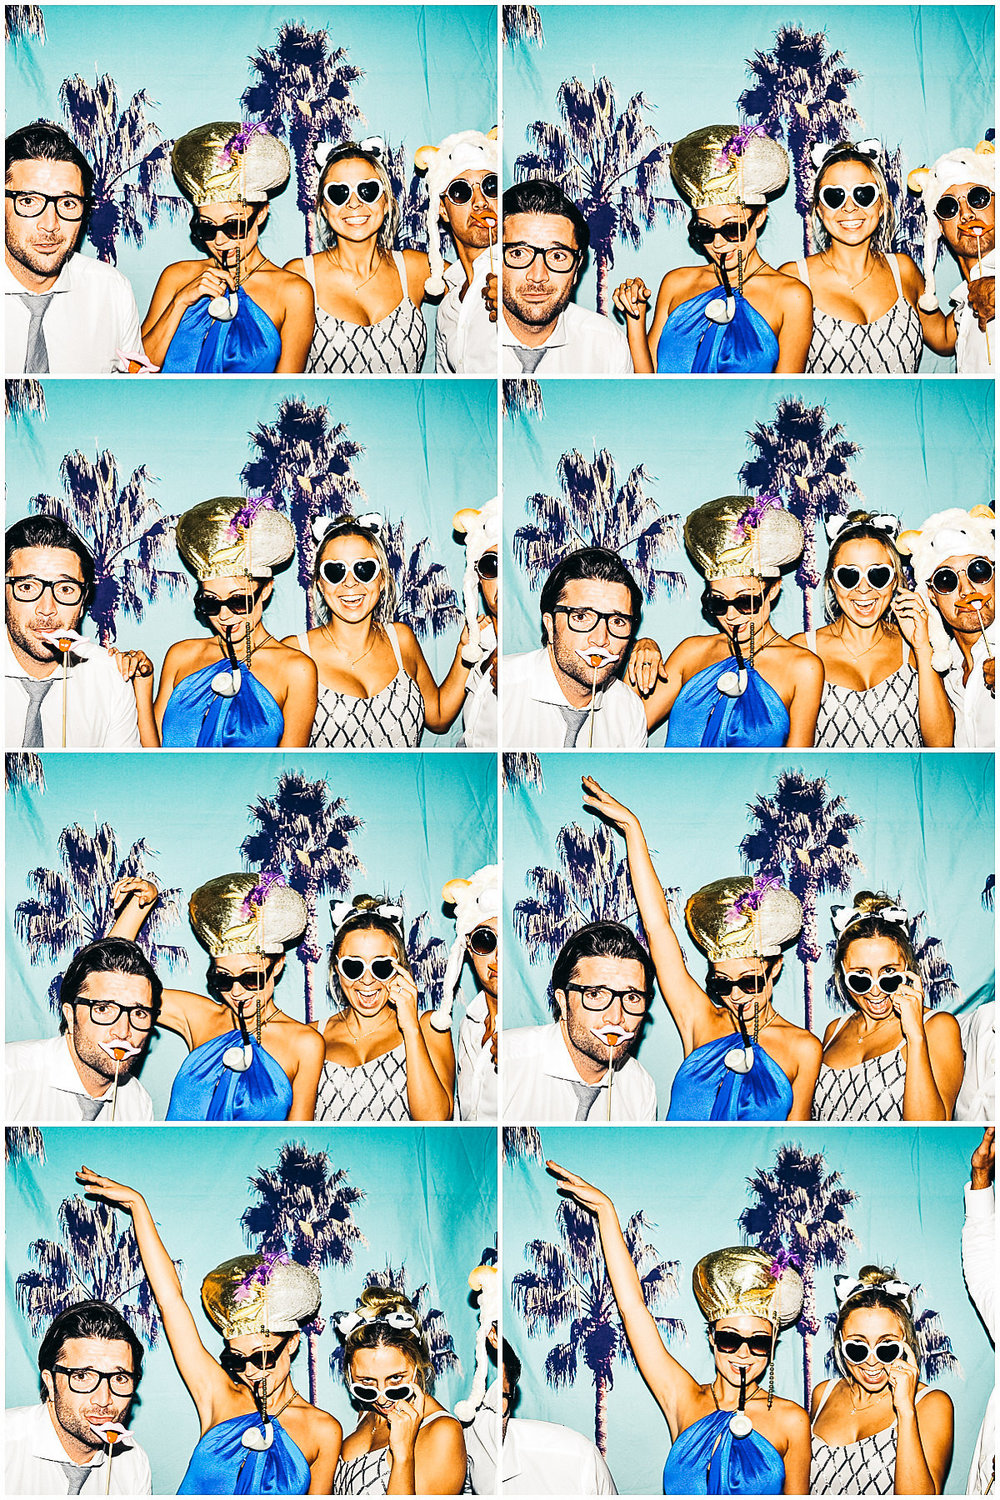 photobooth-068.jpg